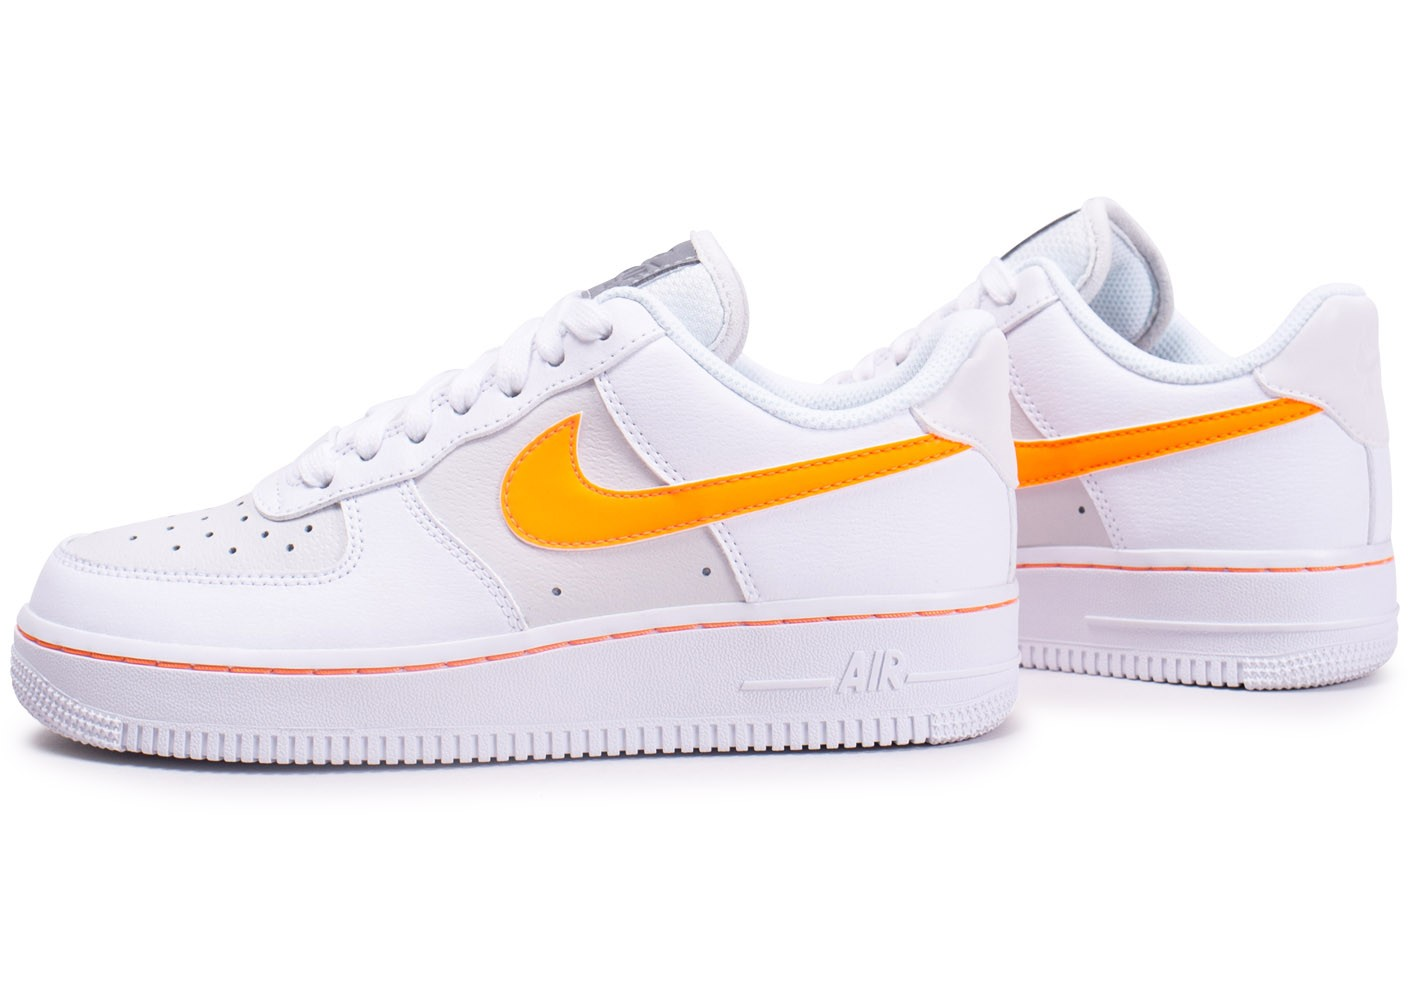 Nike Air Force One Blanche et Orange - Chaussures Baskets femme ...